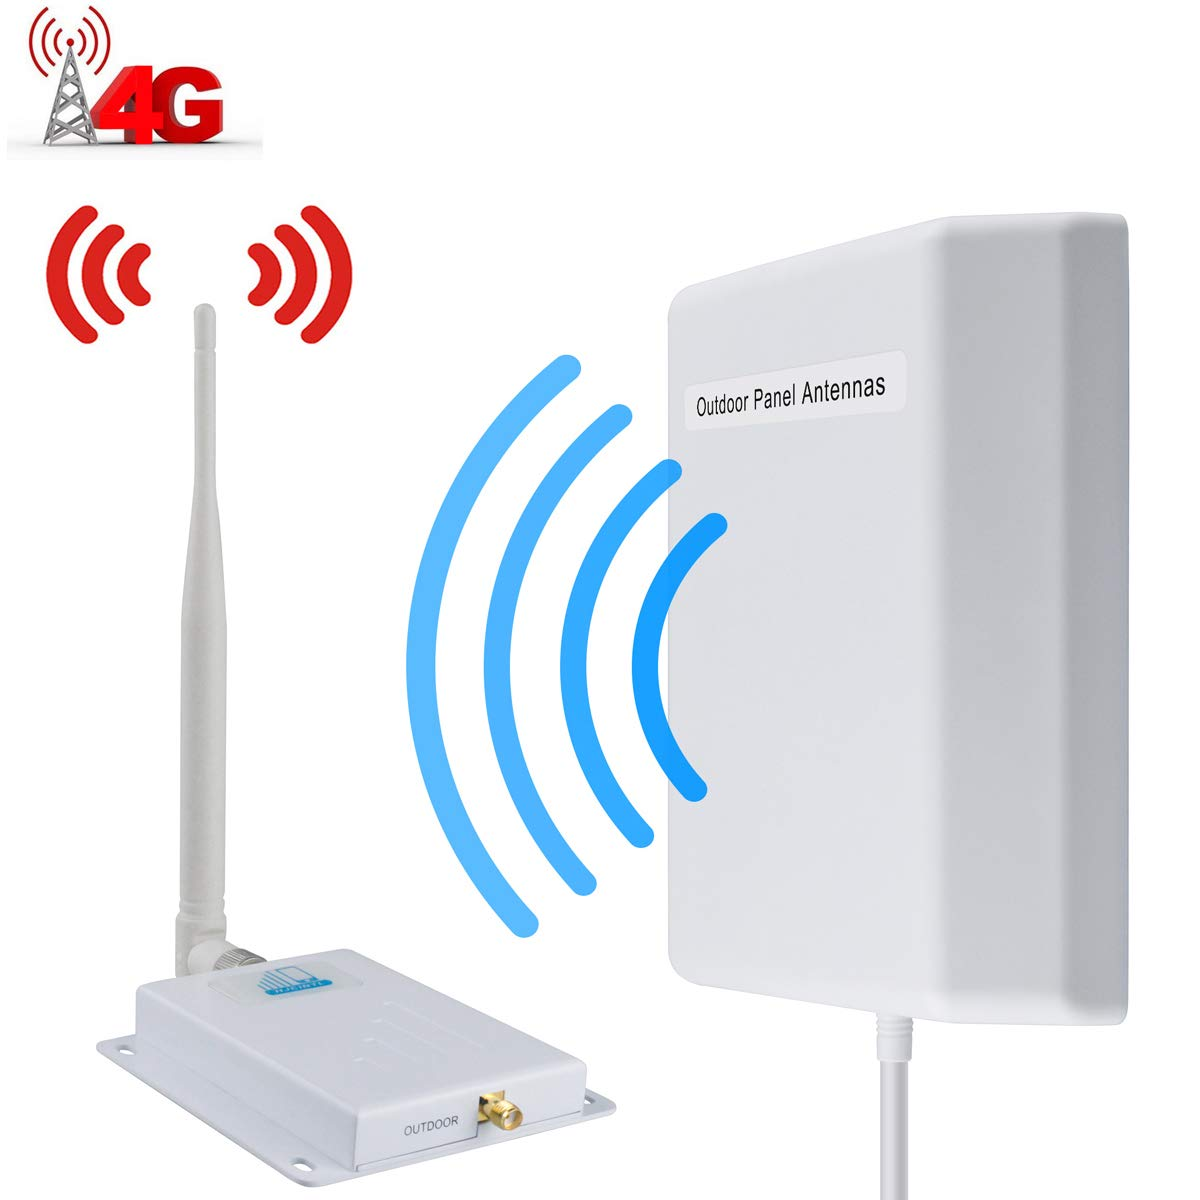 Cell Phone Signal Booster AT&T 4G LTE Signal Booster ATT T-Mobile Cell Signal Booster High Gain Cell Phone Booster HJCINTL FDD 700Mhz Band 12/17 High Gain Mobile Phone Signal Booster for Home by HJCINTL